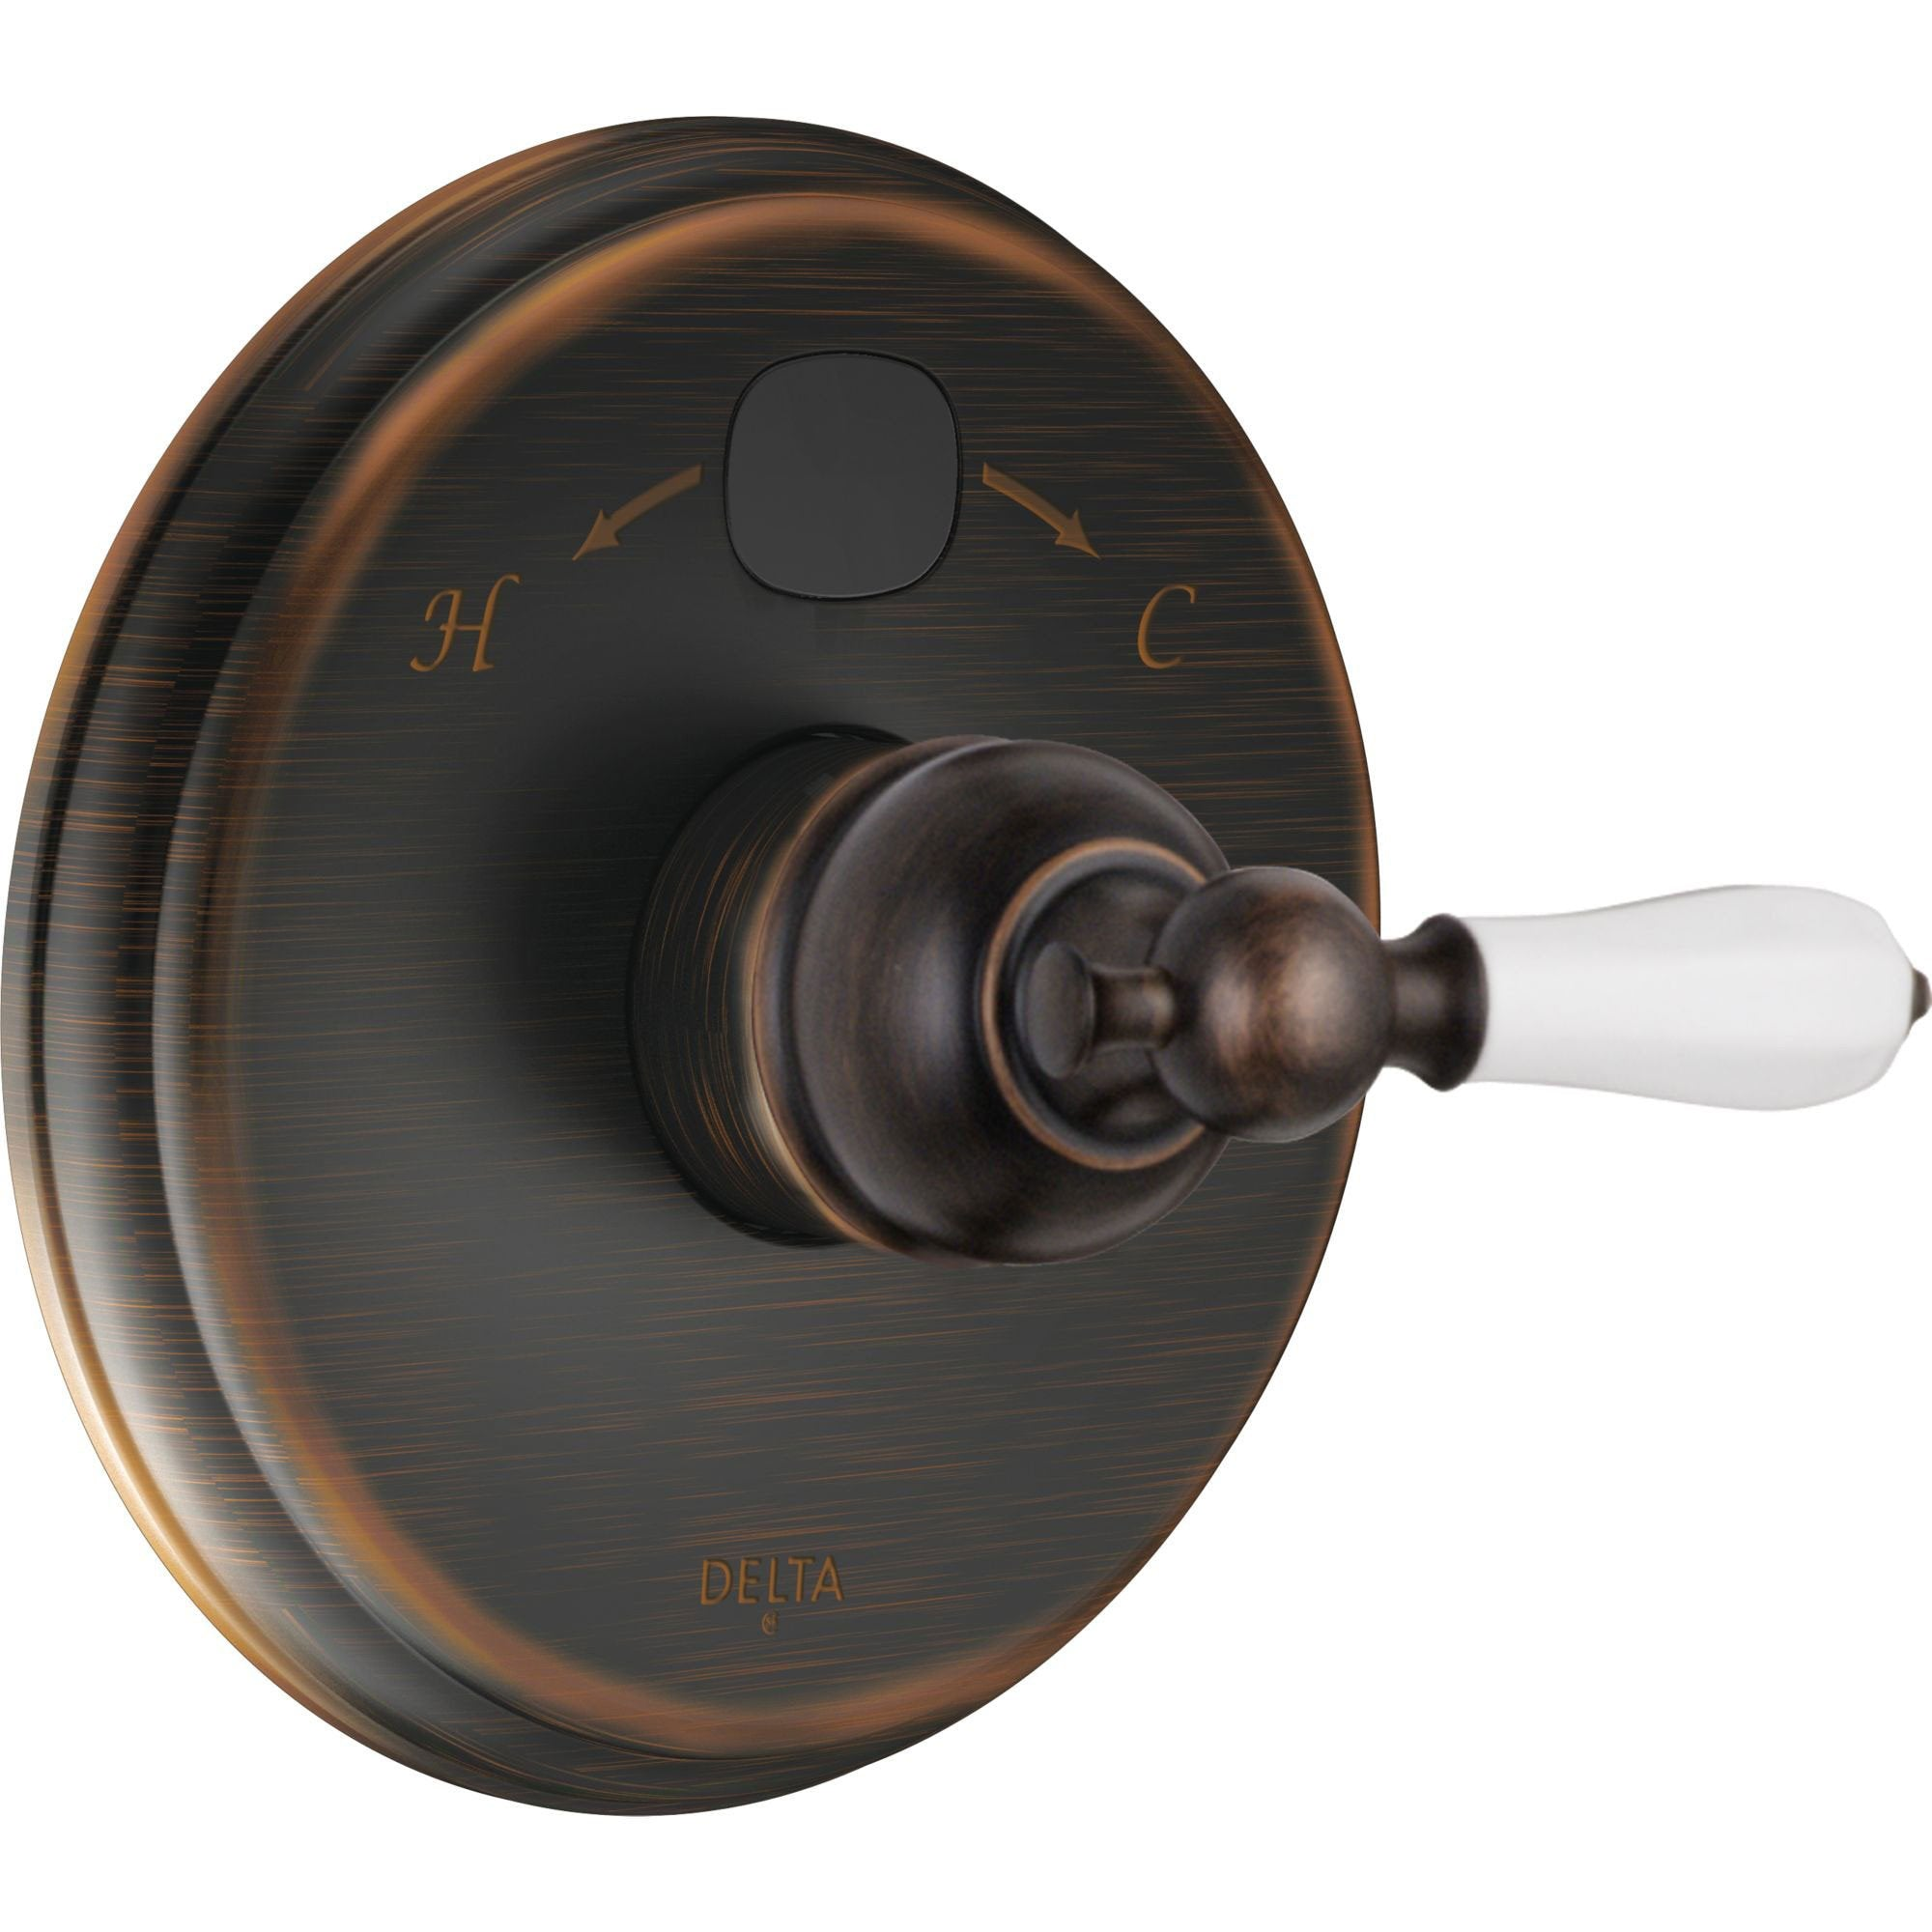 Delta Traditional 14 Series Temp2O Venetian Bronze Finish Pressure Balanced Shower Faucet Control with Digital Display INCLUDES Rough-in Valve and White Porcelain Lever Handle D1278V